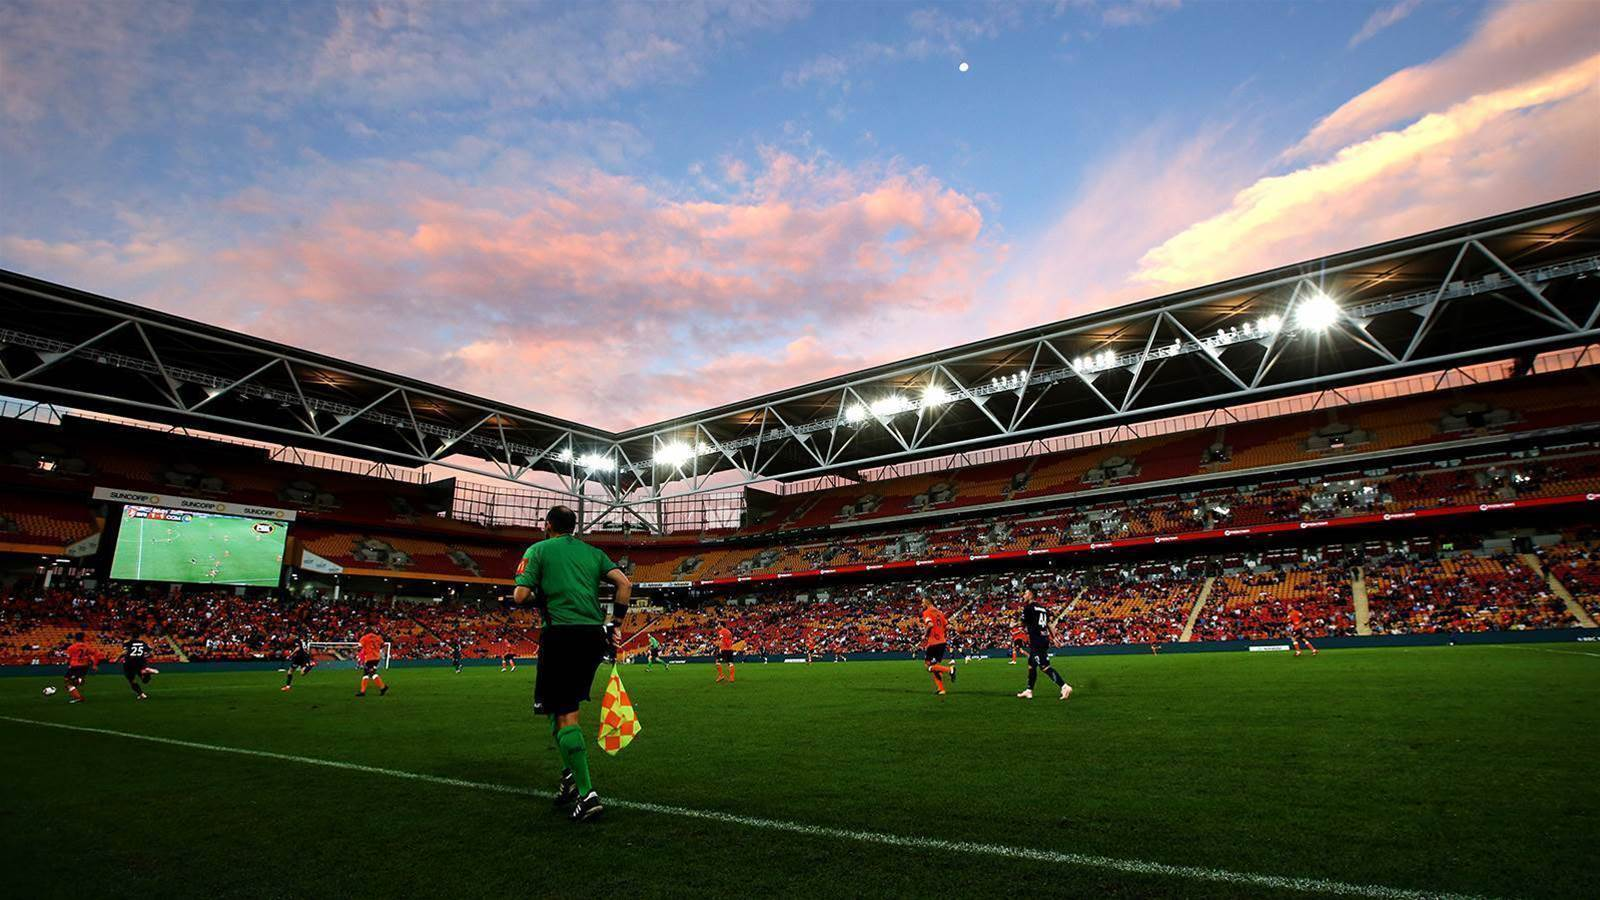 NRL force FFA out of Finals venue